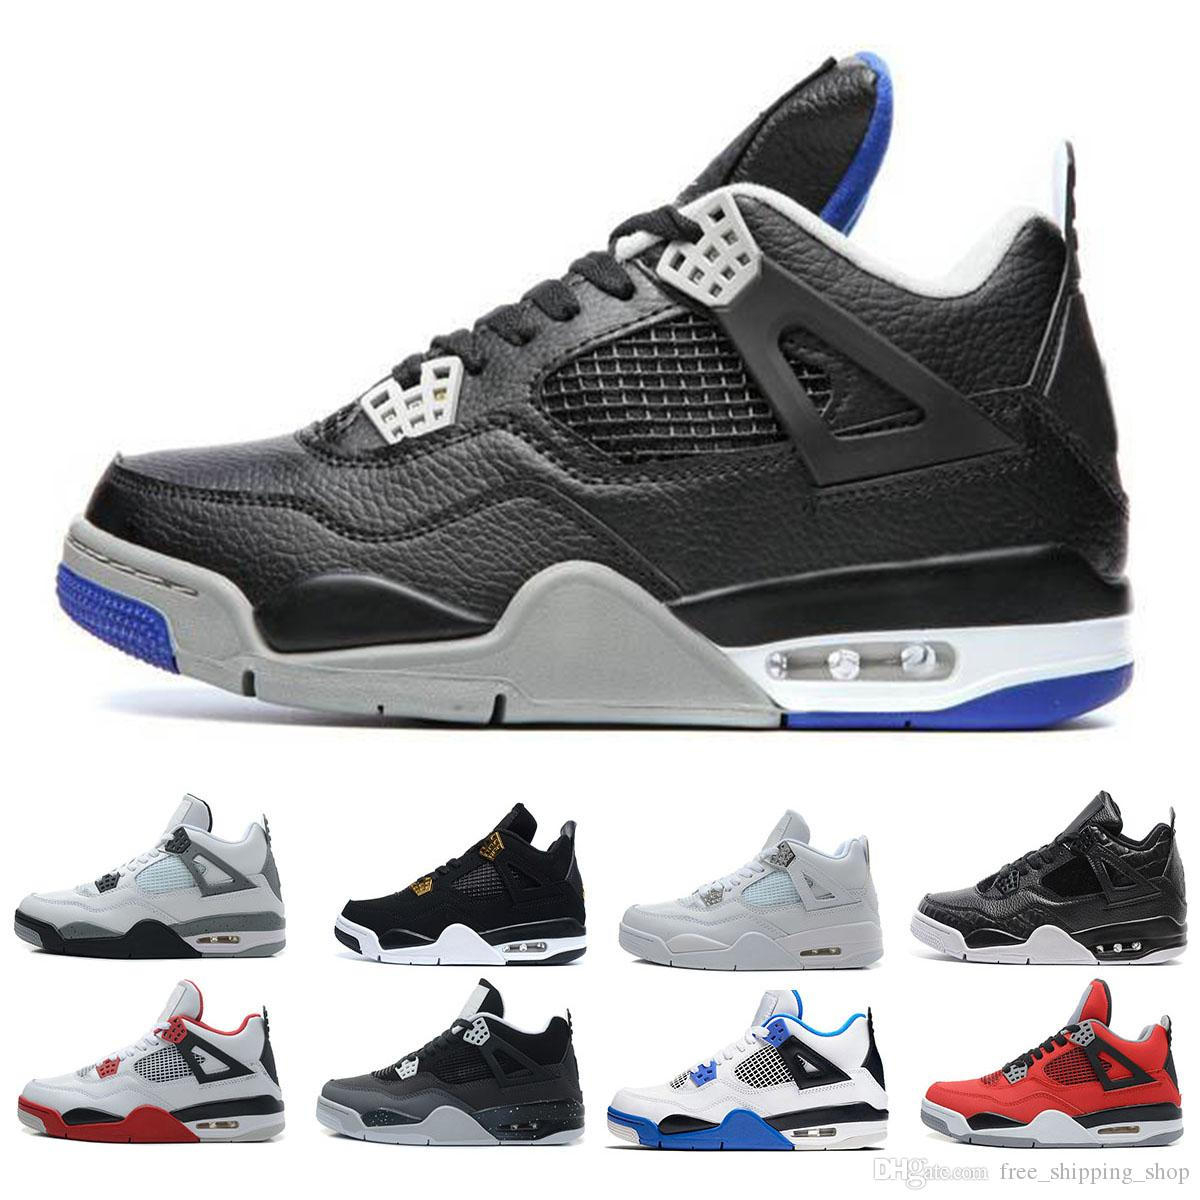 837ca097bced0e Wholesale Mens Alternate Motorsport Basketball Shoes Fashion 4s Blue Black  Cat Pure Money White Cement Royalty Toro Bravo Designer Sneakers Shoes  Online ...